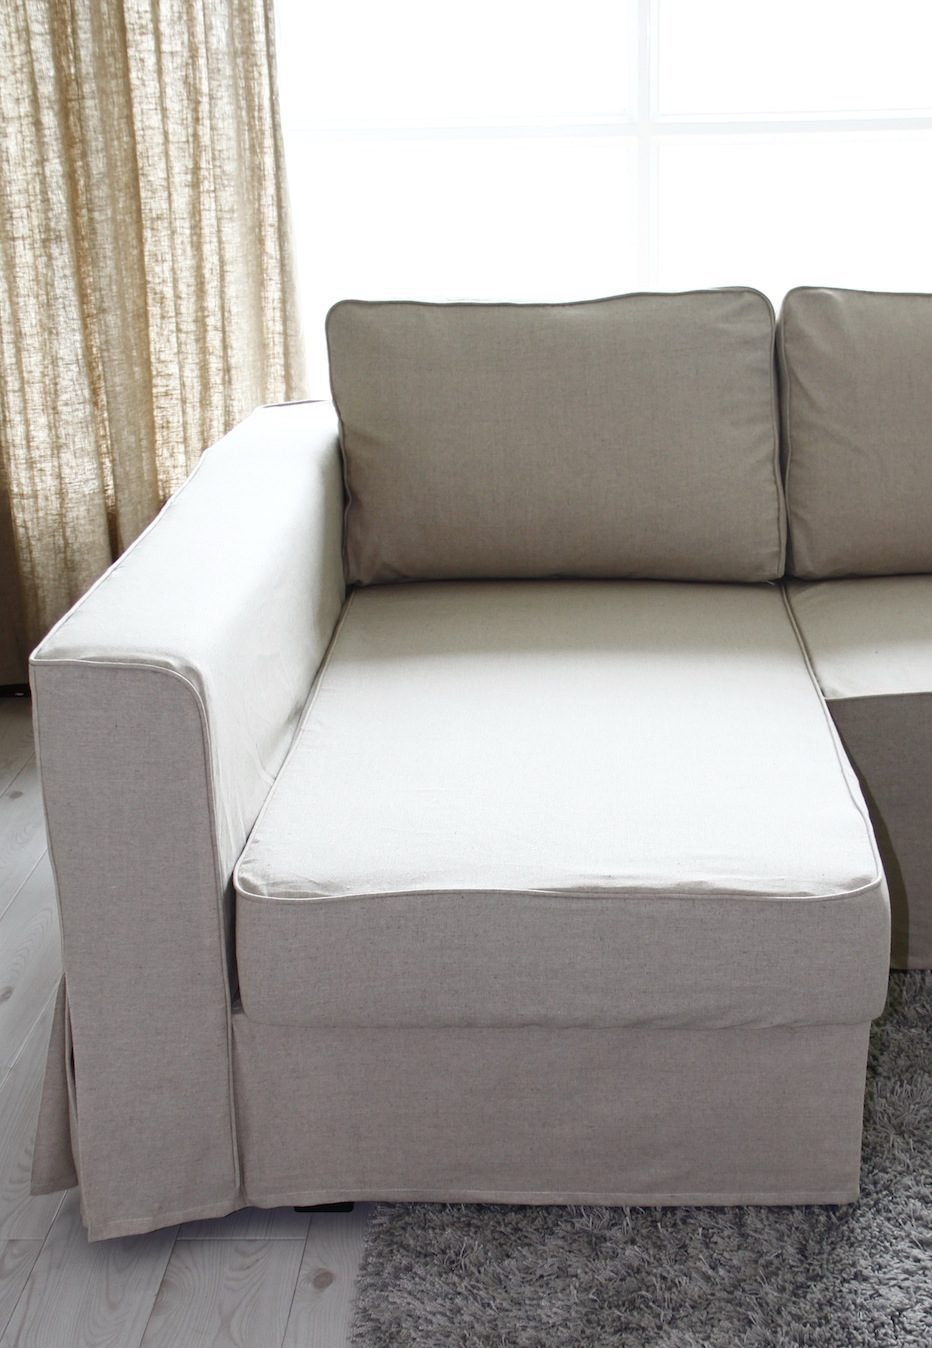 Individual cover for the Chaise's seat cushion allows access to storage.